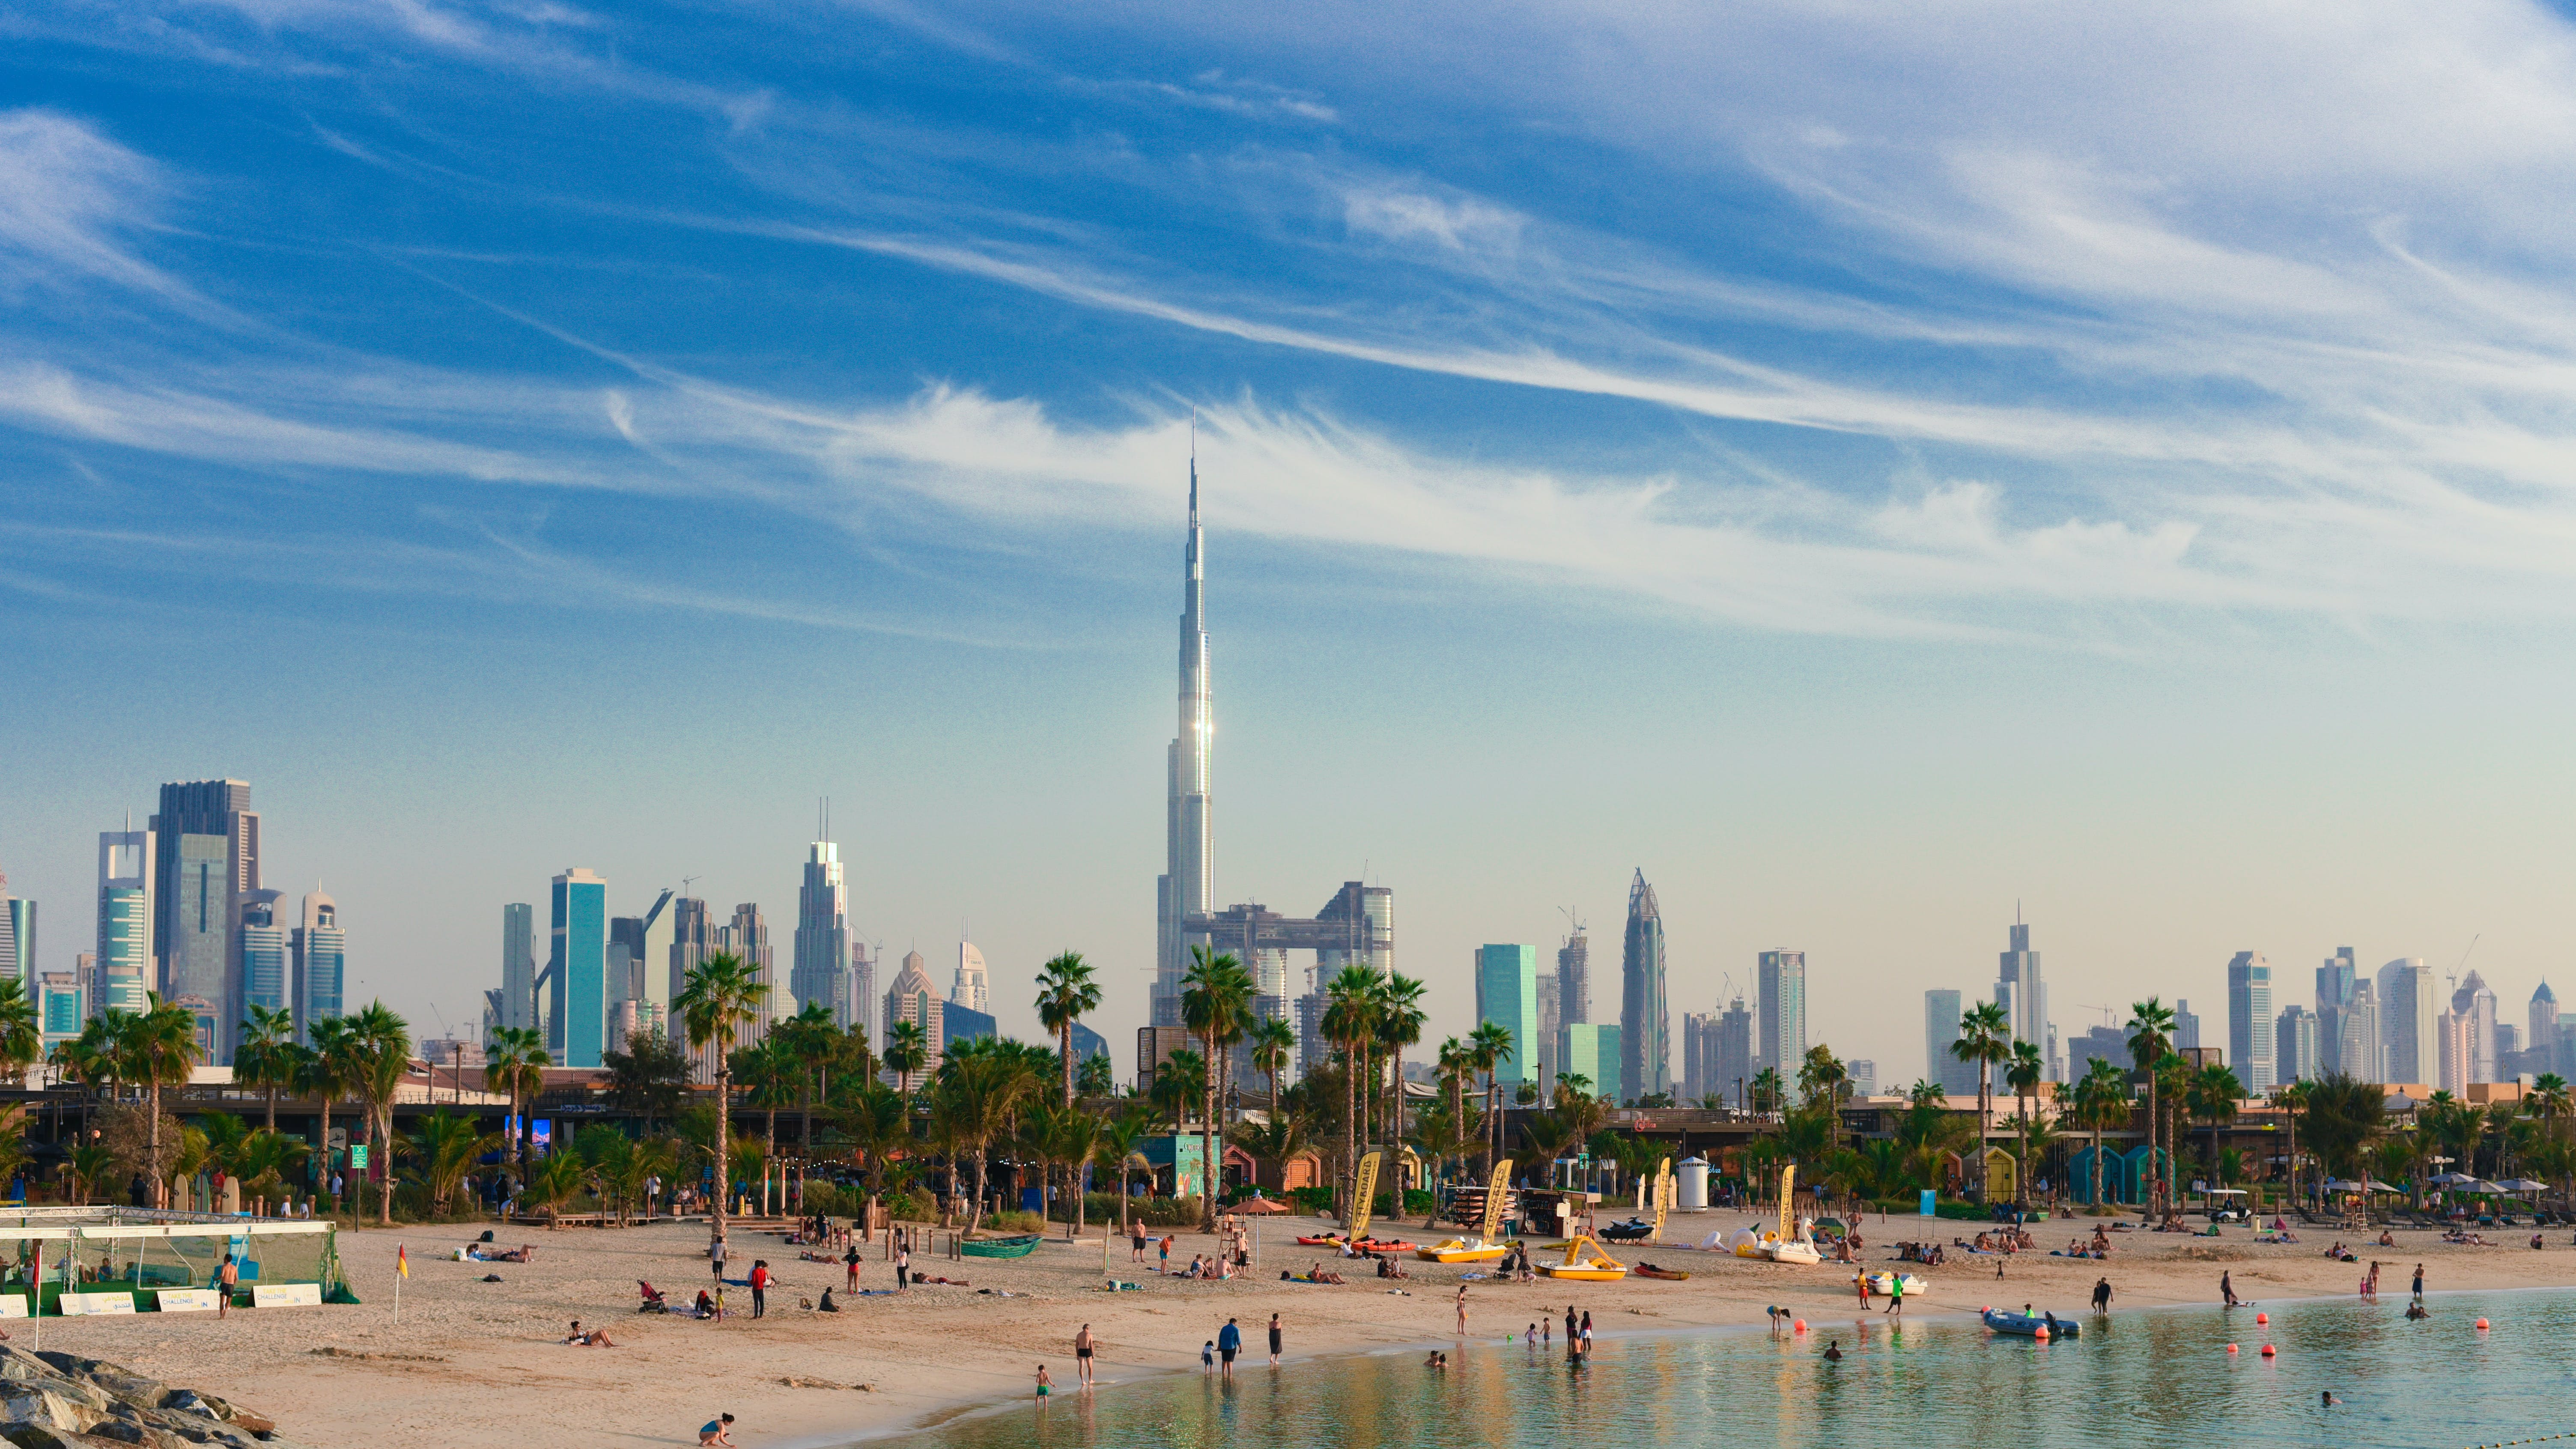 Free stock photo of Adobe Photoshop, burj khalifa, dubai, la mer